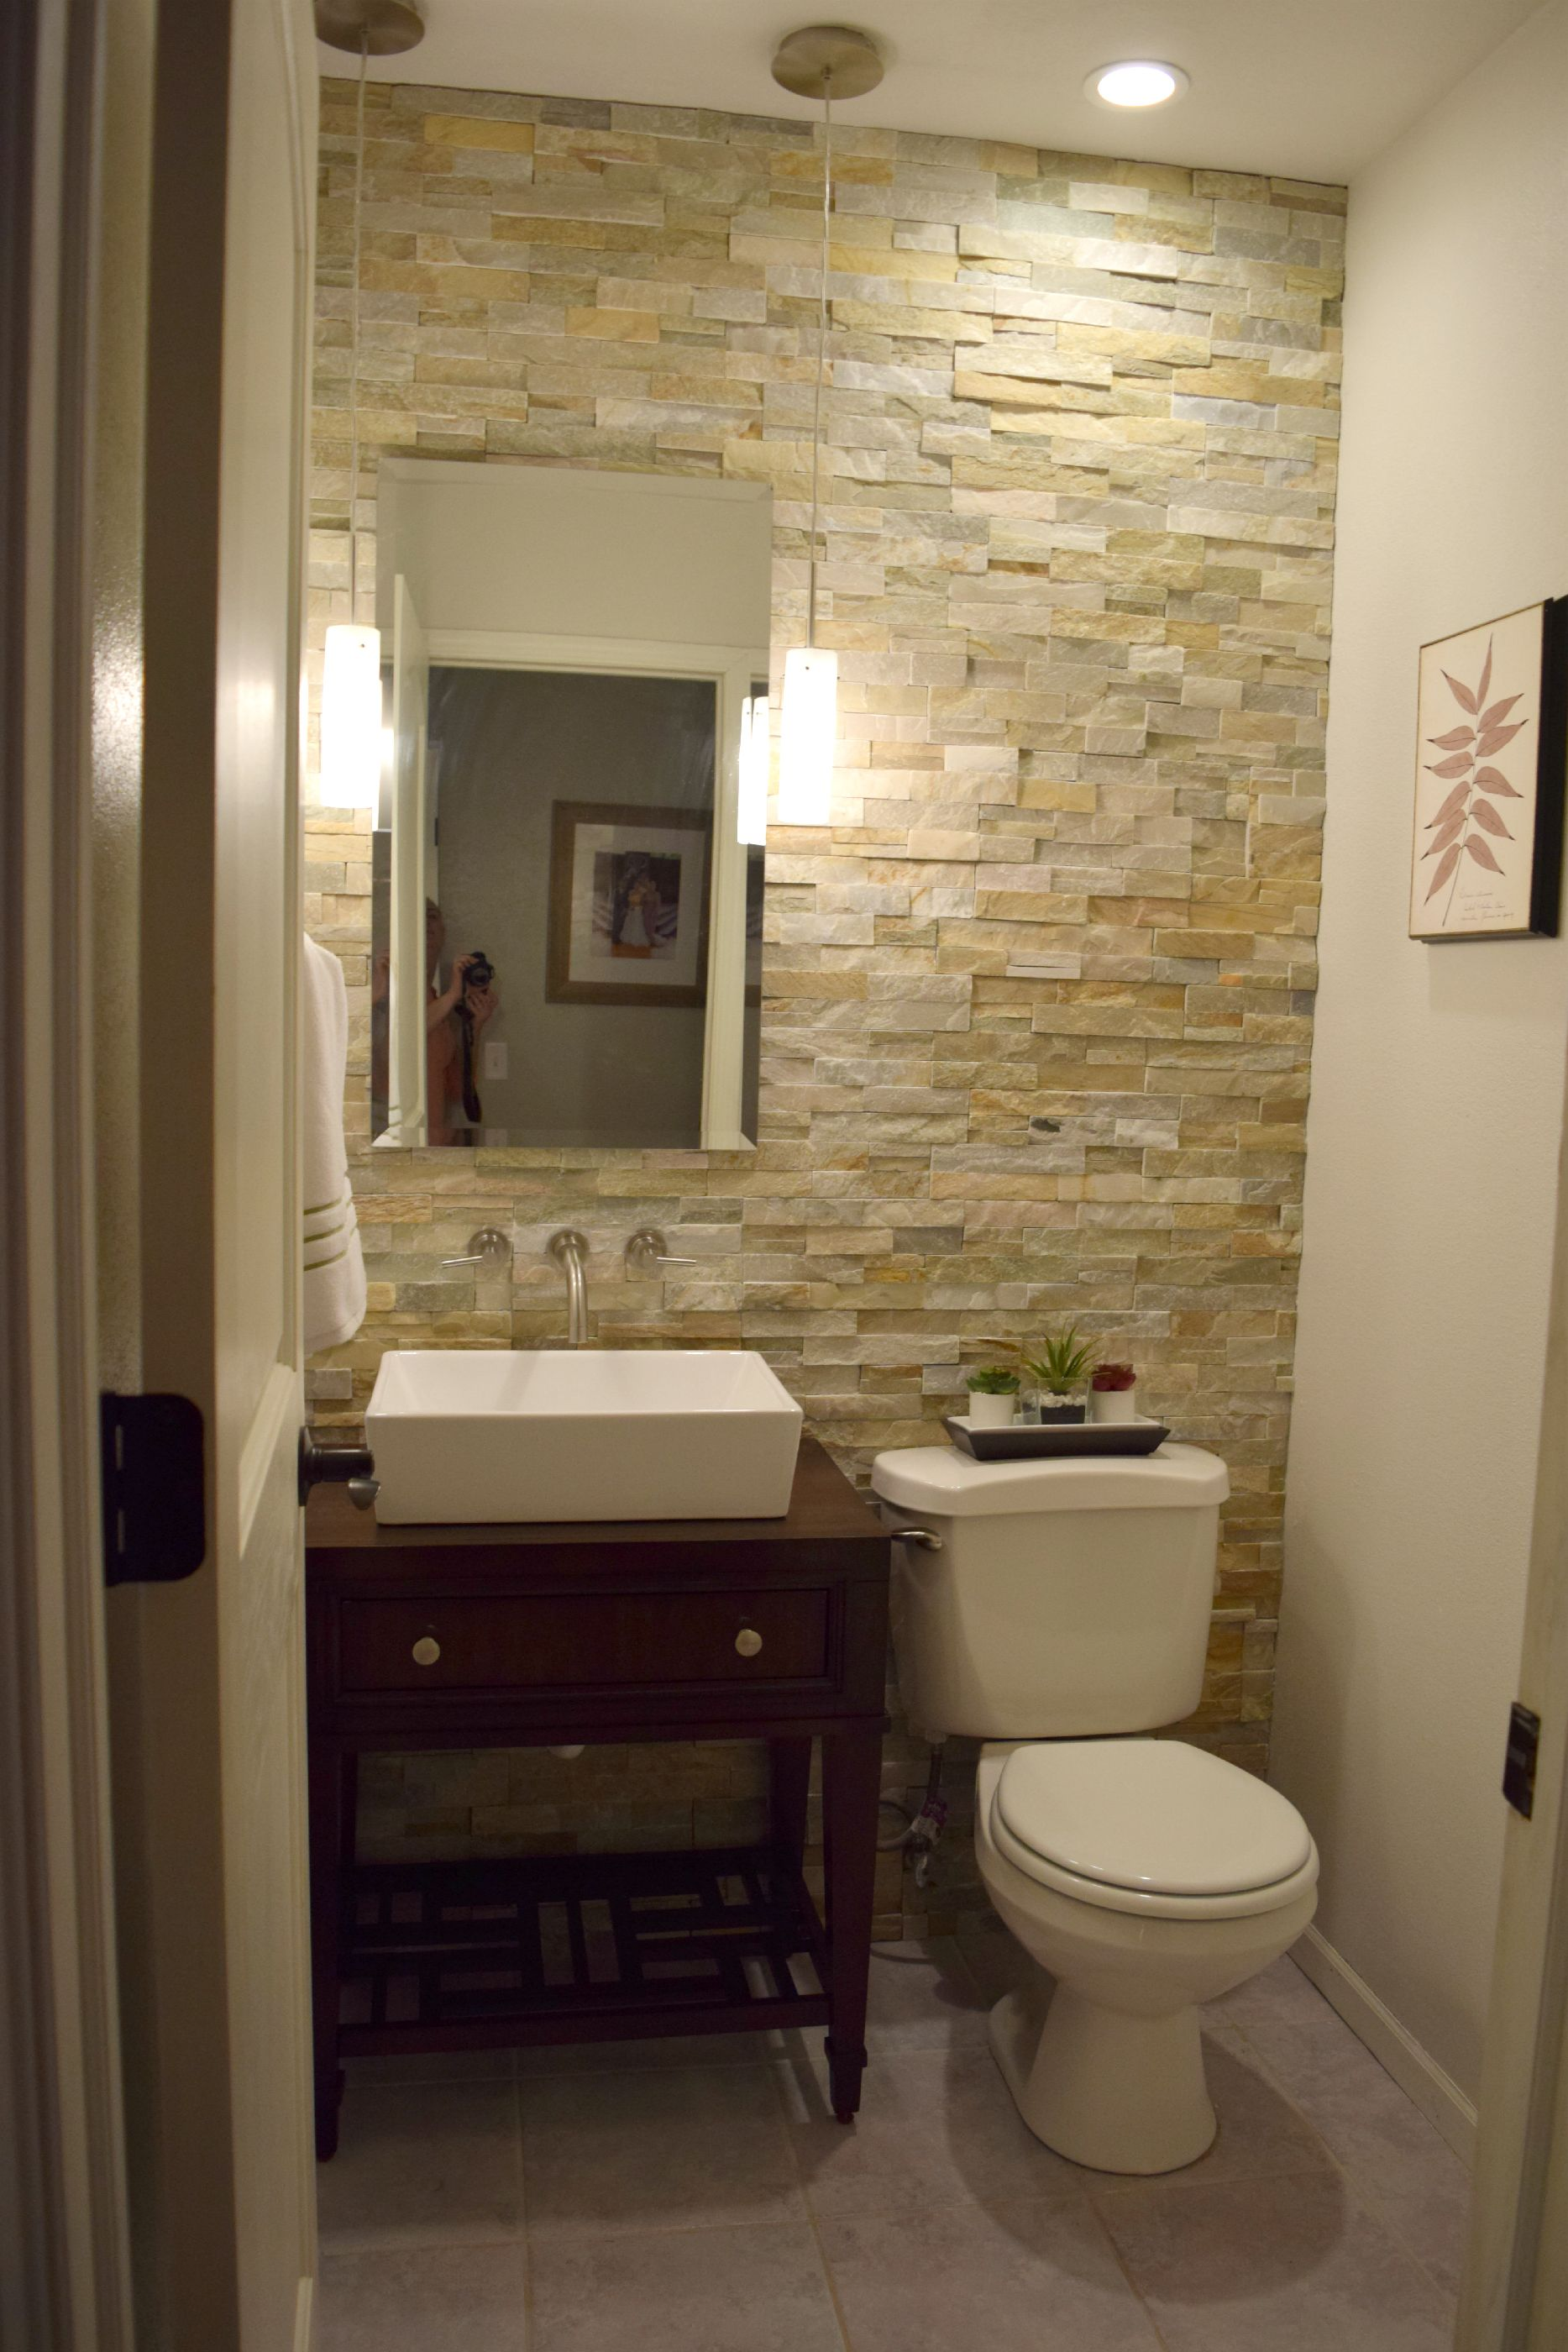 remodel powder file gallery best bathroom of room ideas with designs a unnamed stunning has your fantastic design for